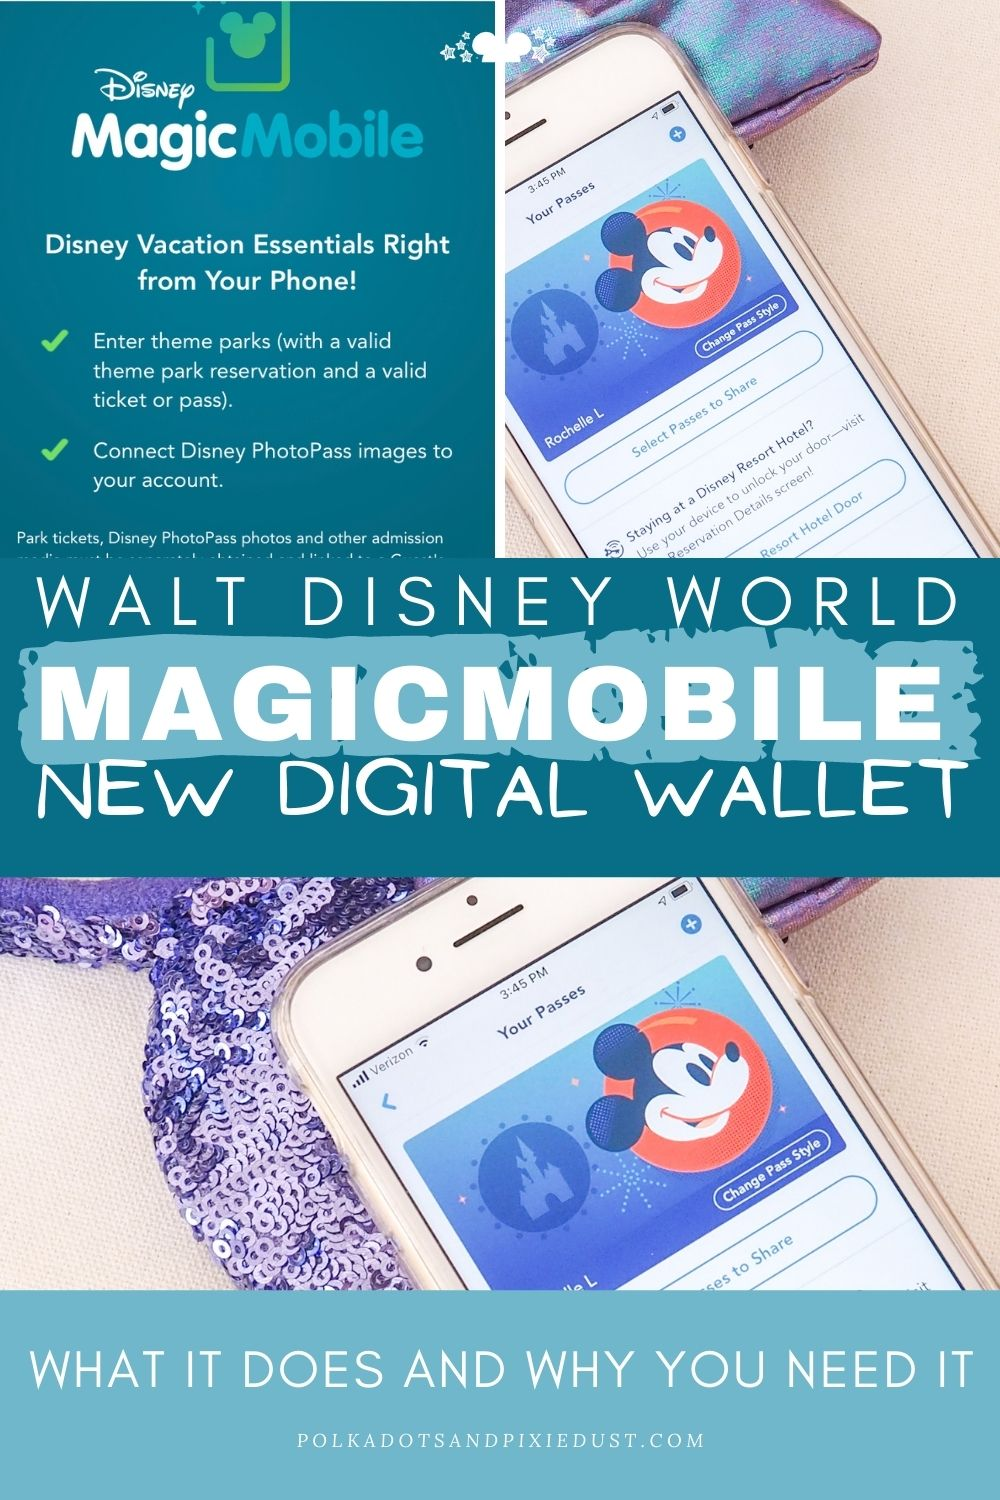 Walt Disney World MagicMobile Service has arrived! Here's everything to know about this new digital wallet. #polkadotpixies